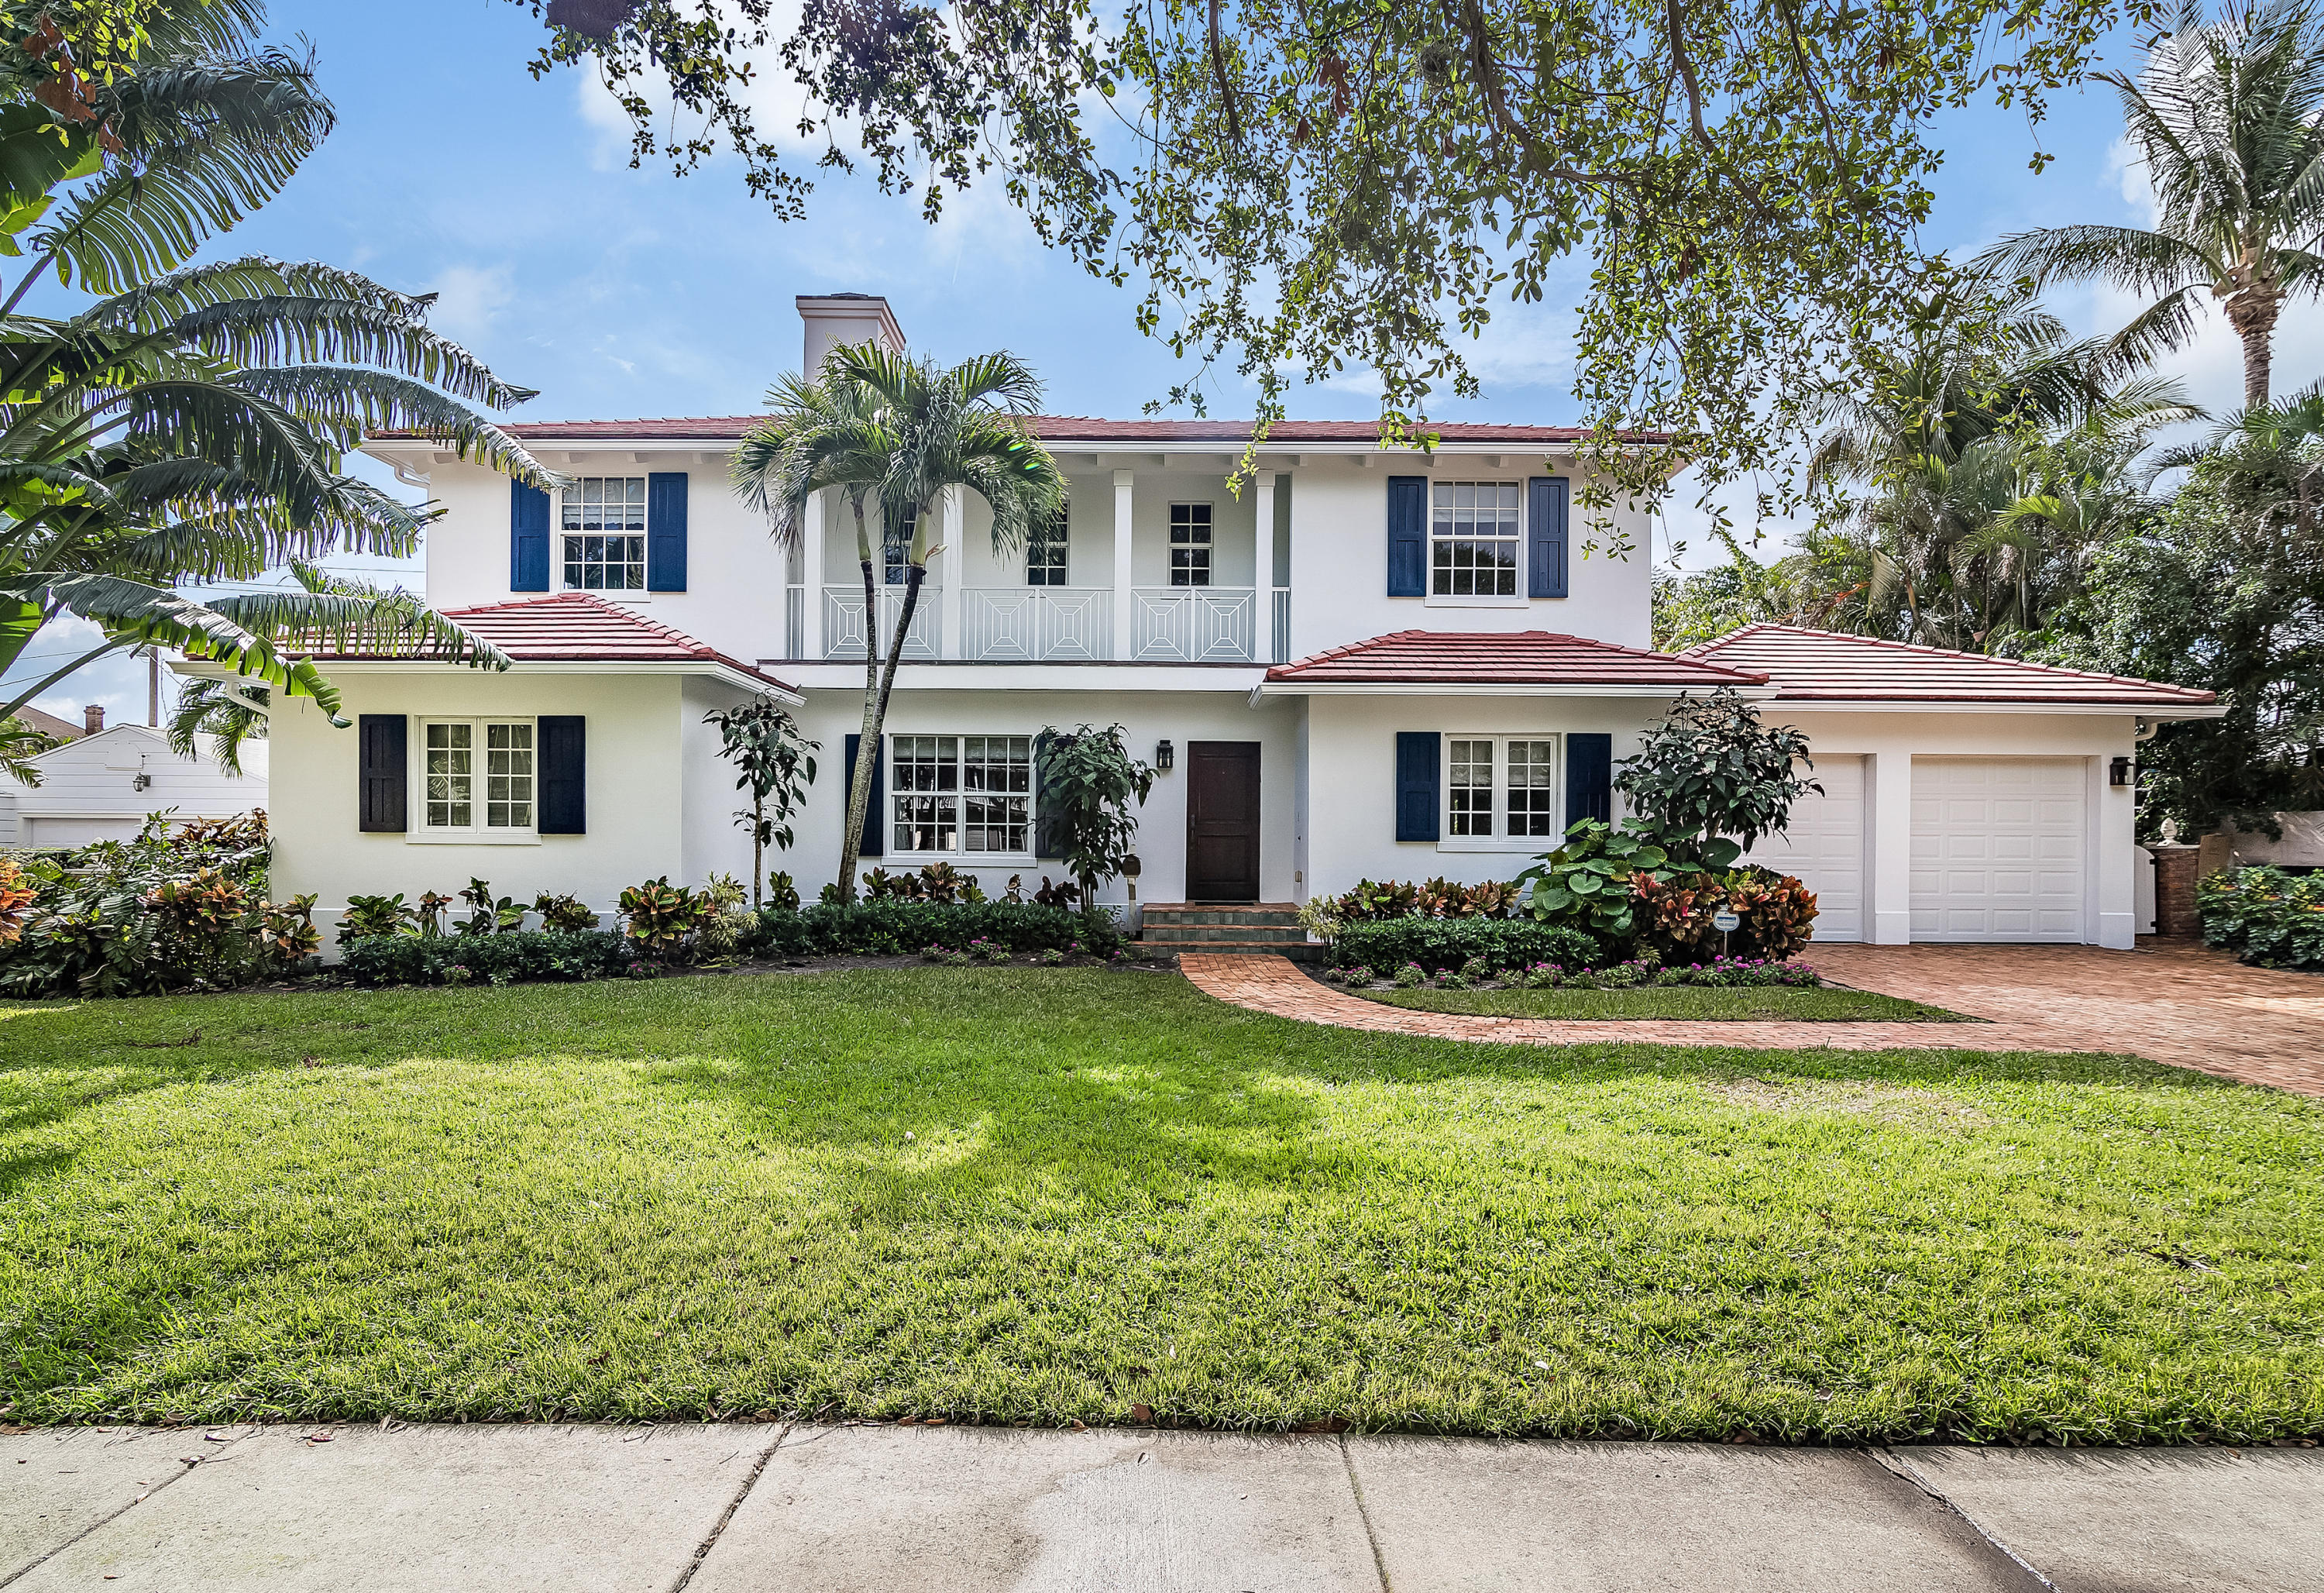 220 Dyer Road, West Palm Beach, Florida 33405, 5 Bedrooms Bedrooms, ,4.1 BathroomsBathrooms,Single Family,For Sale,Dyer,RX-10345088